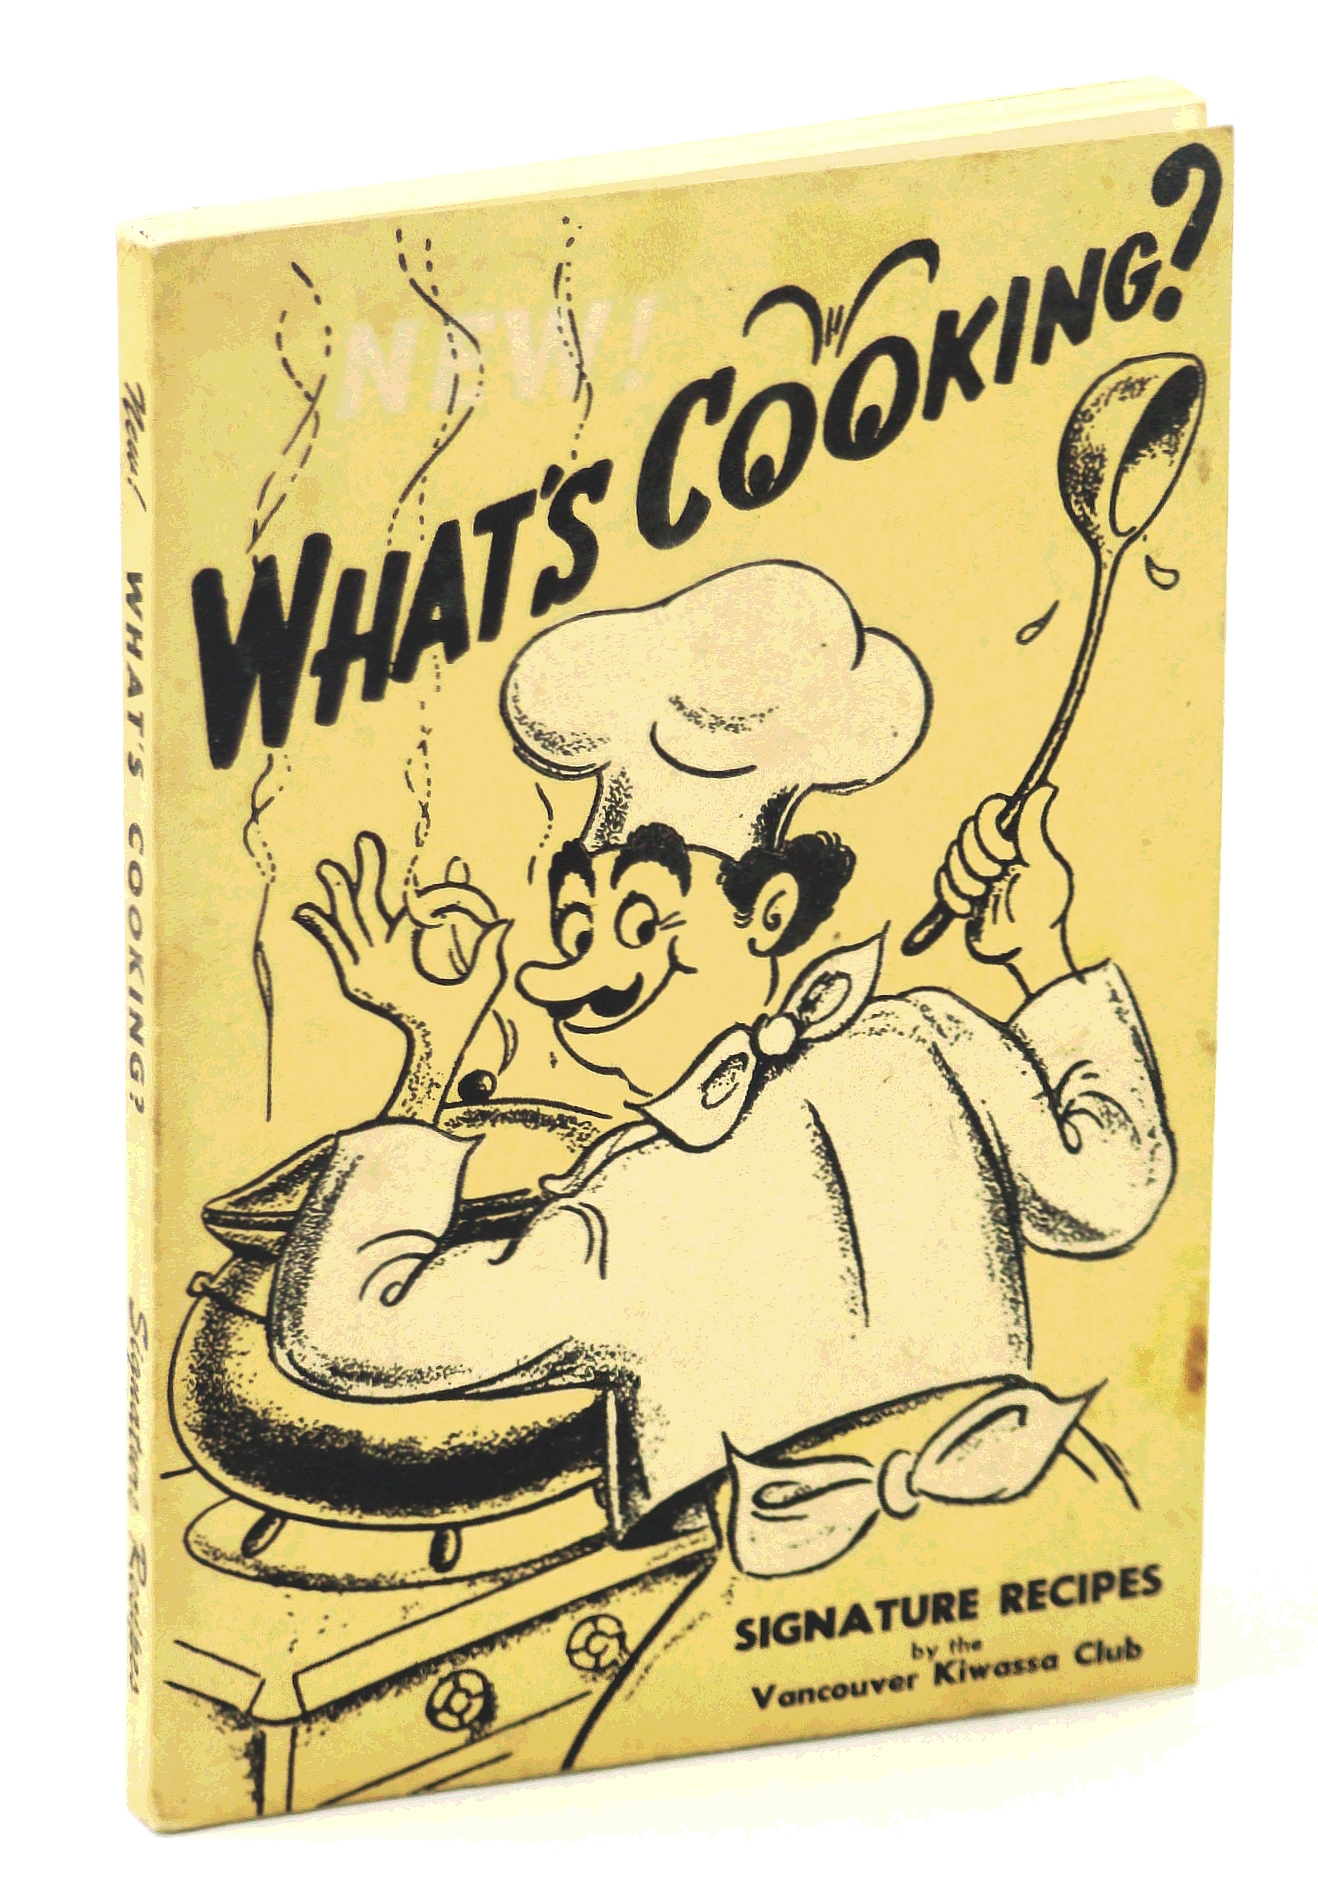 Image for What's Cooking?  Signature Recipes By the Vancouver, B.C. Kiwassa Club [Cookbook / Cook Book]